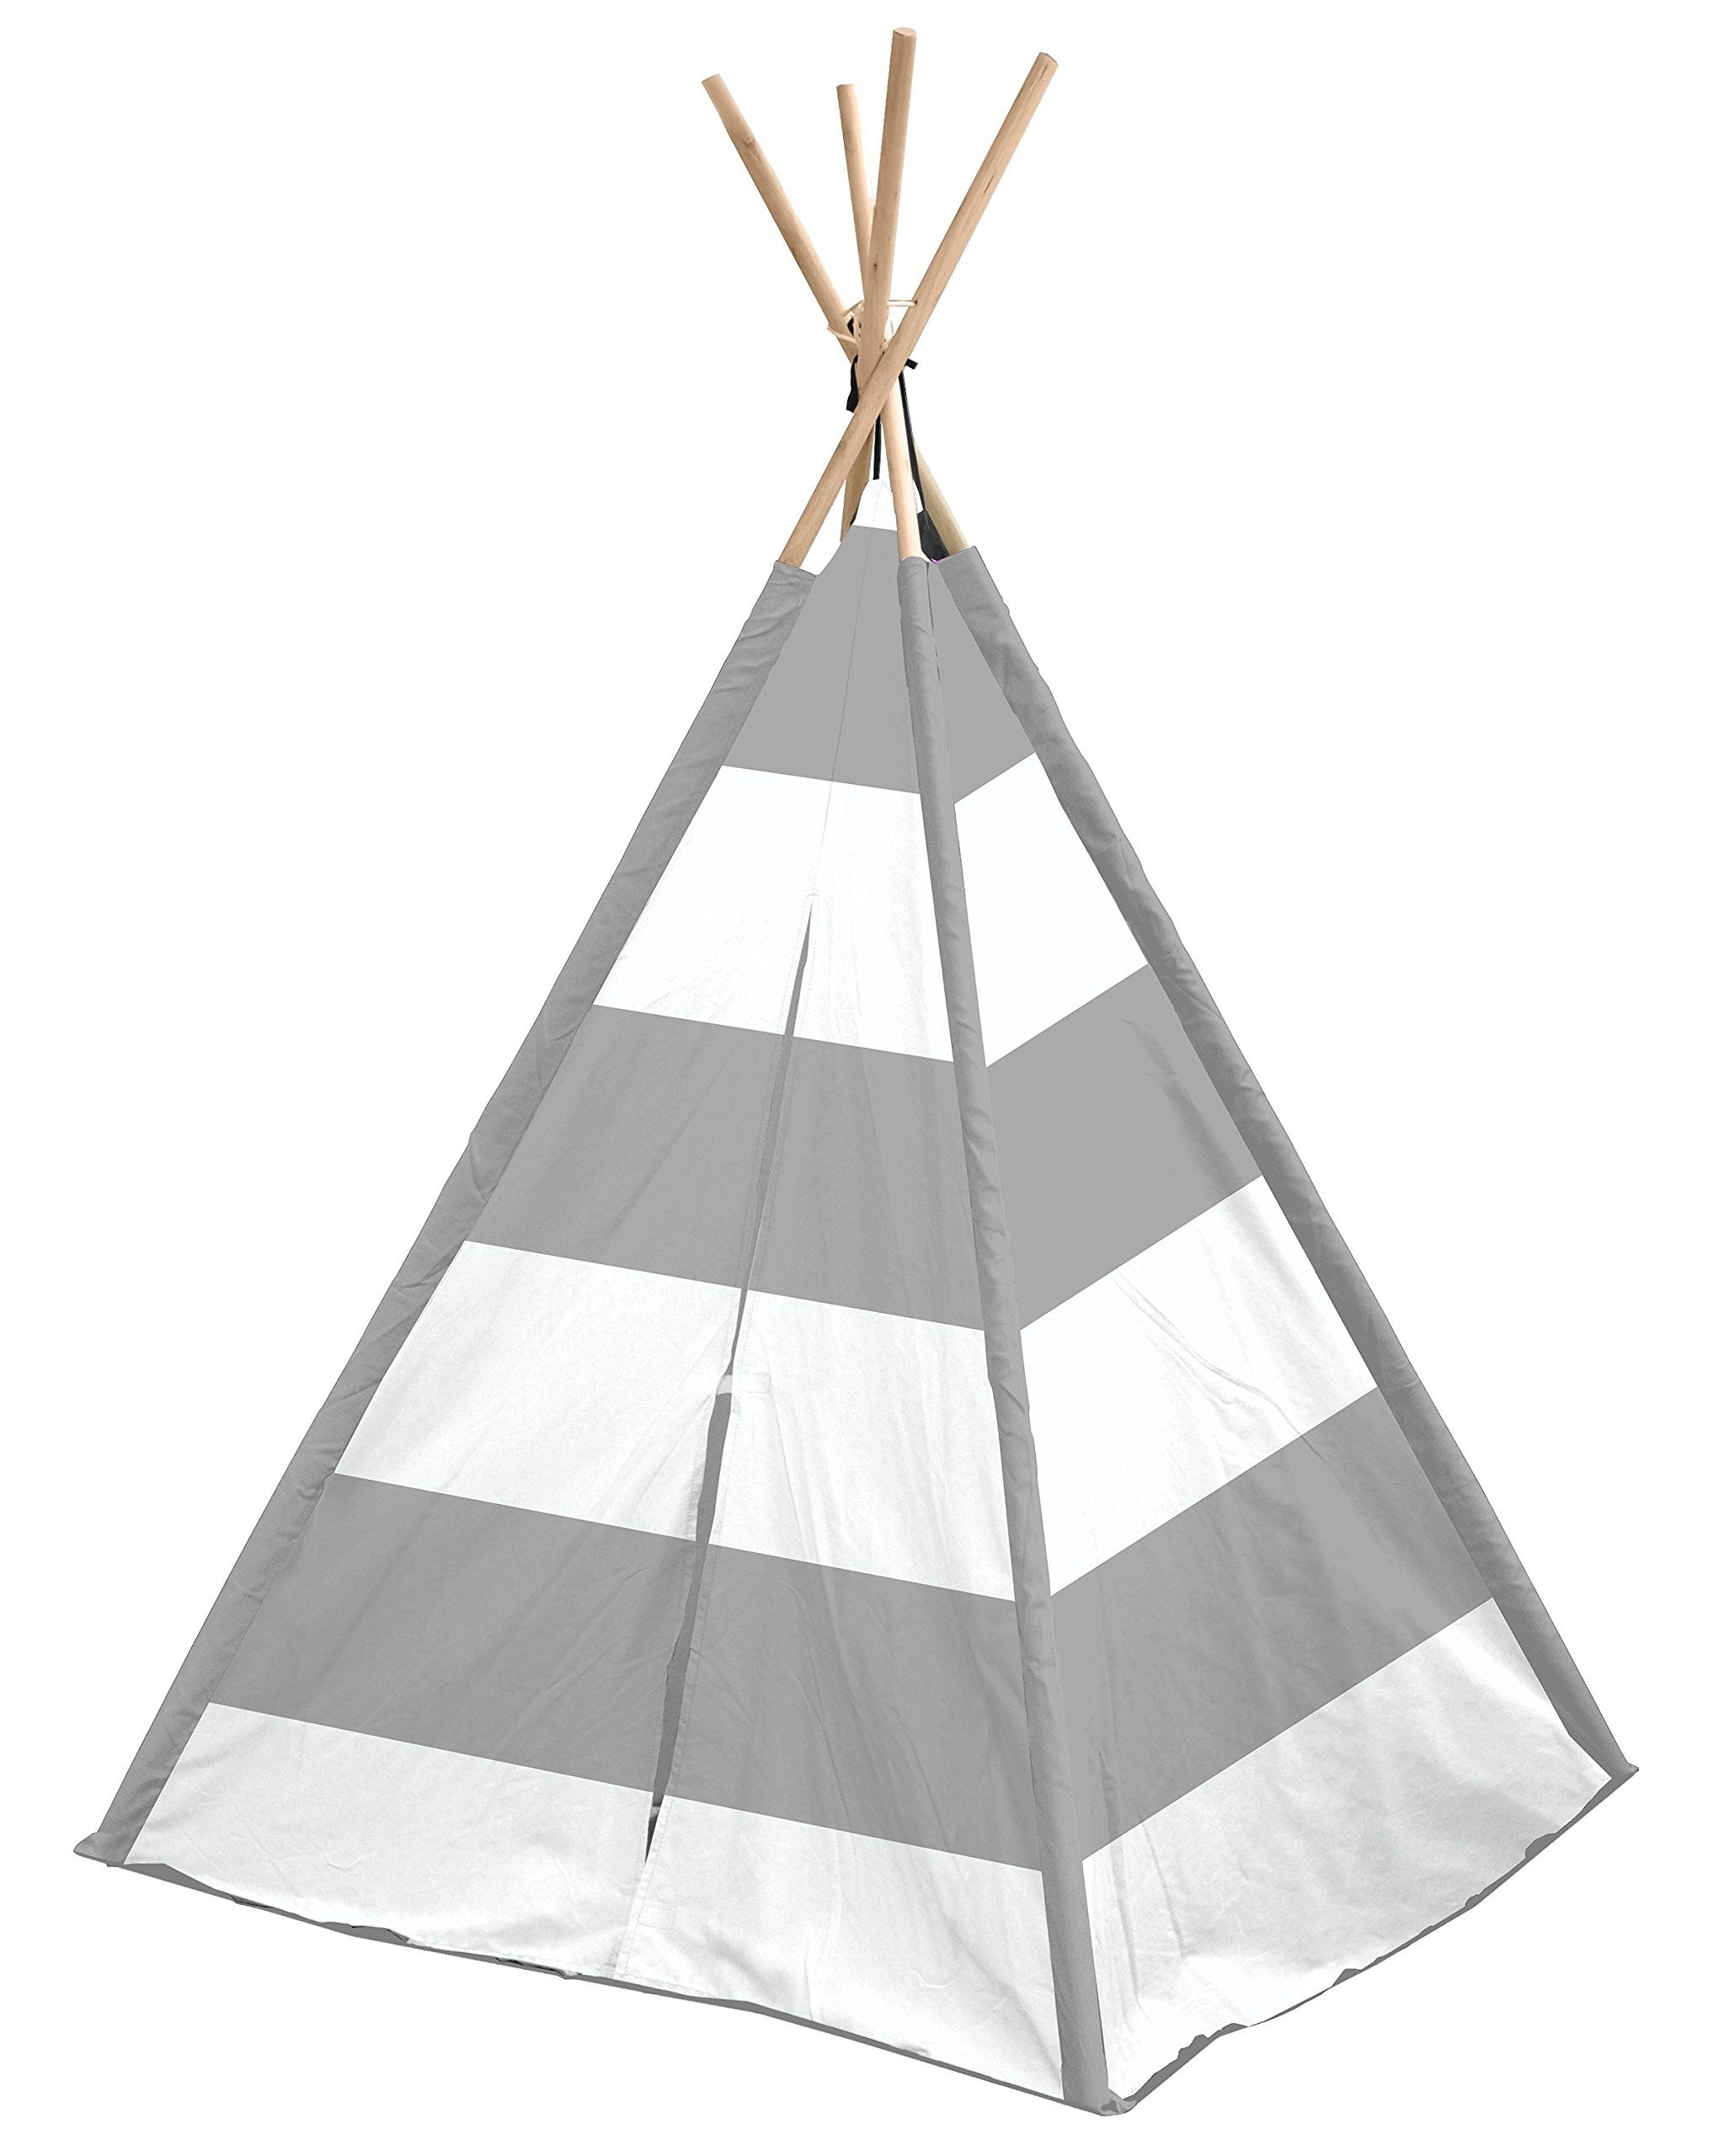 Heritage Kids Nk639570 Stripe Play Tent, Grey And White